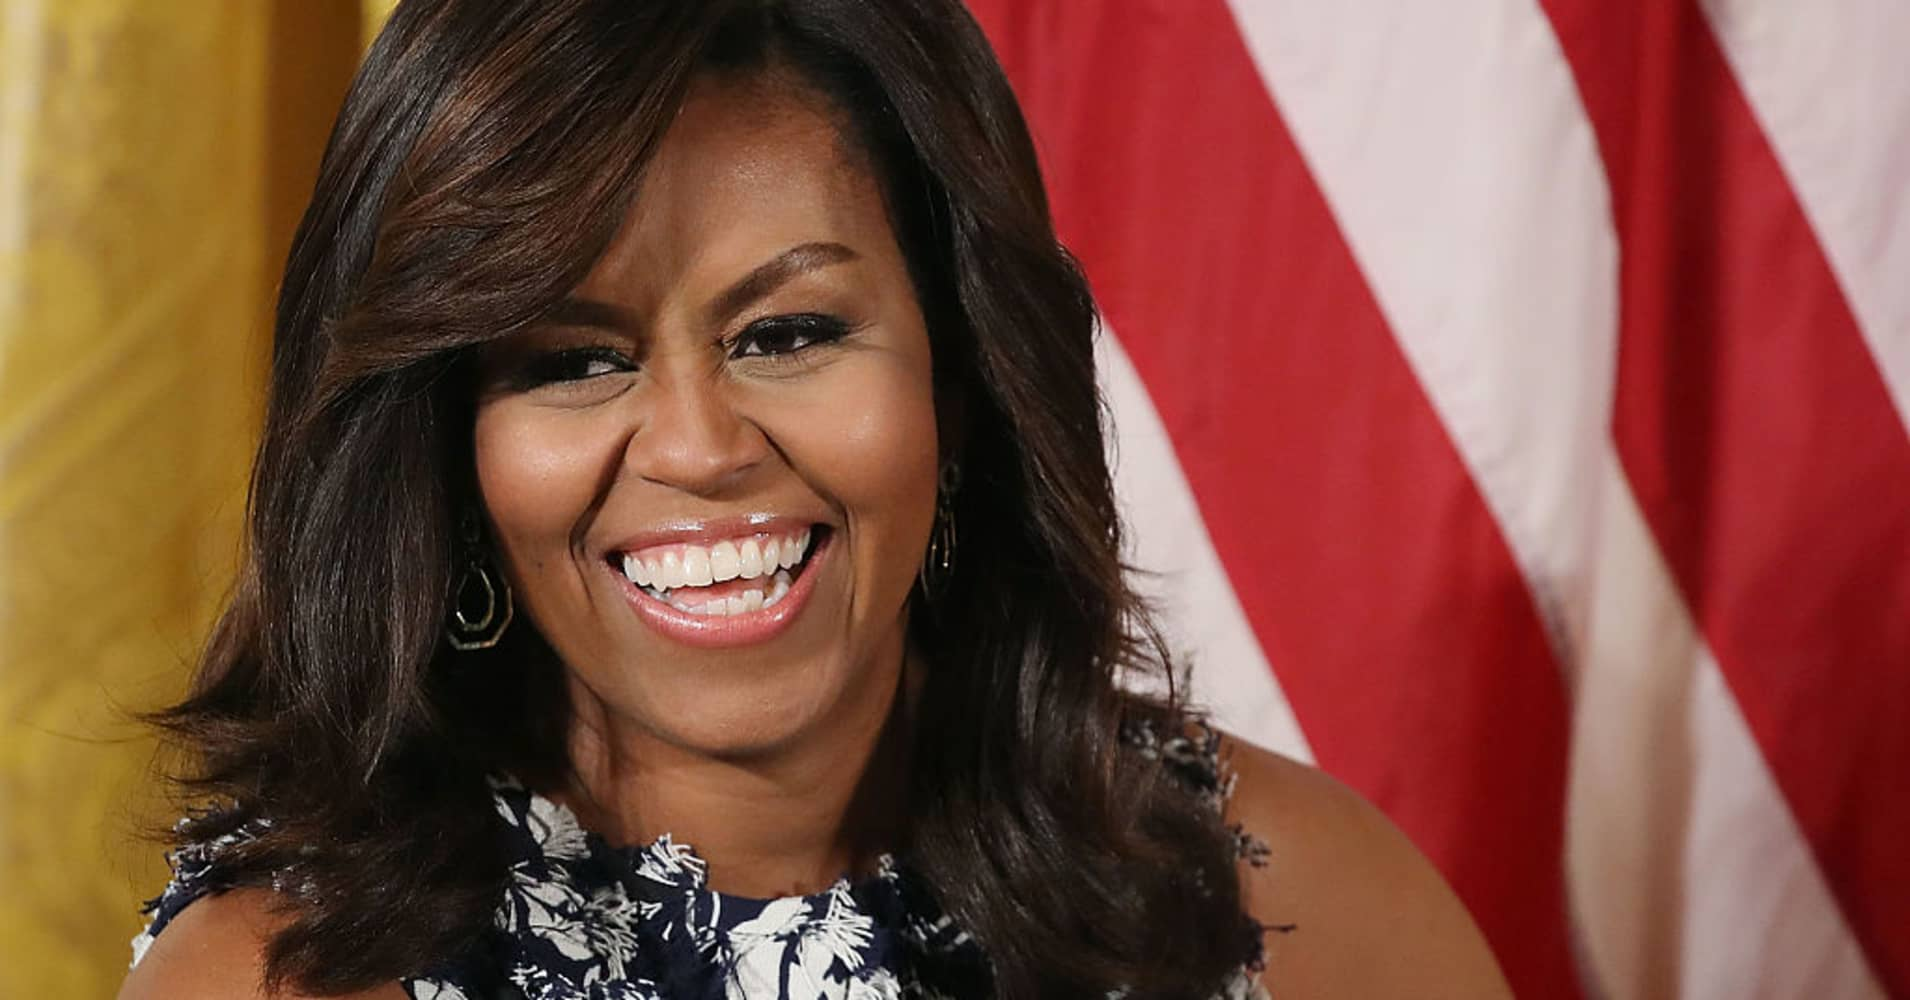 Michelle Obama, Former First Lady of the United States